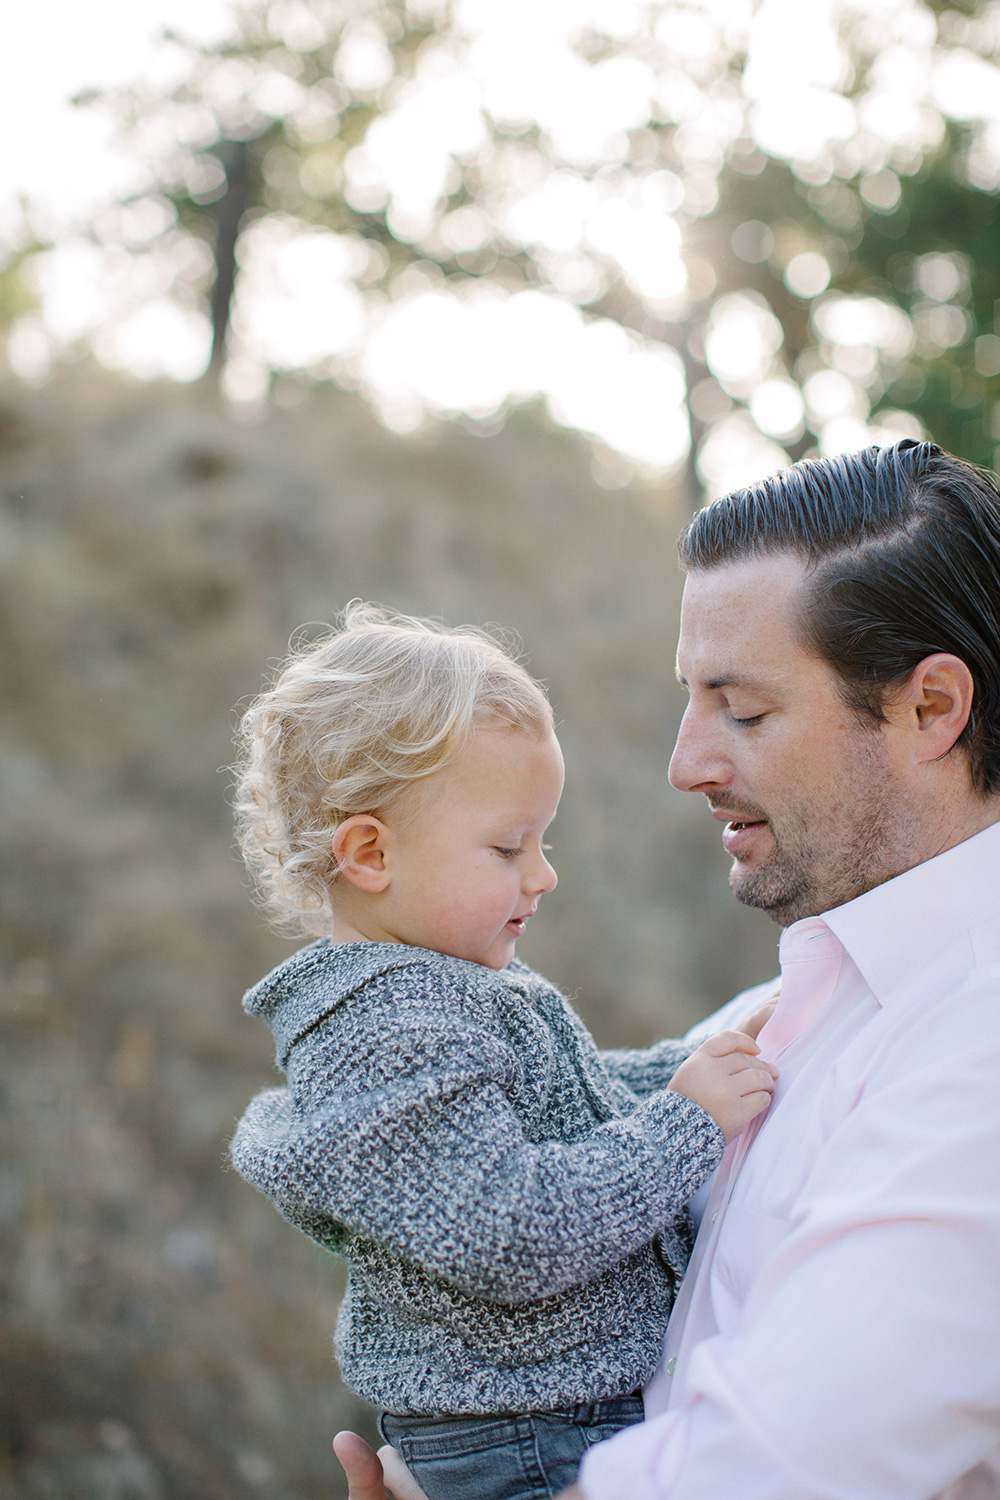 maui family photographer cadence travels to the san francisco bay area and takes photographs in Marin.